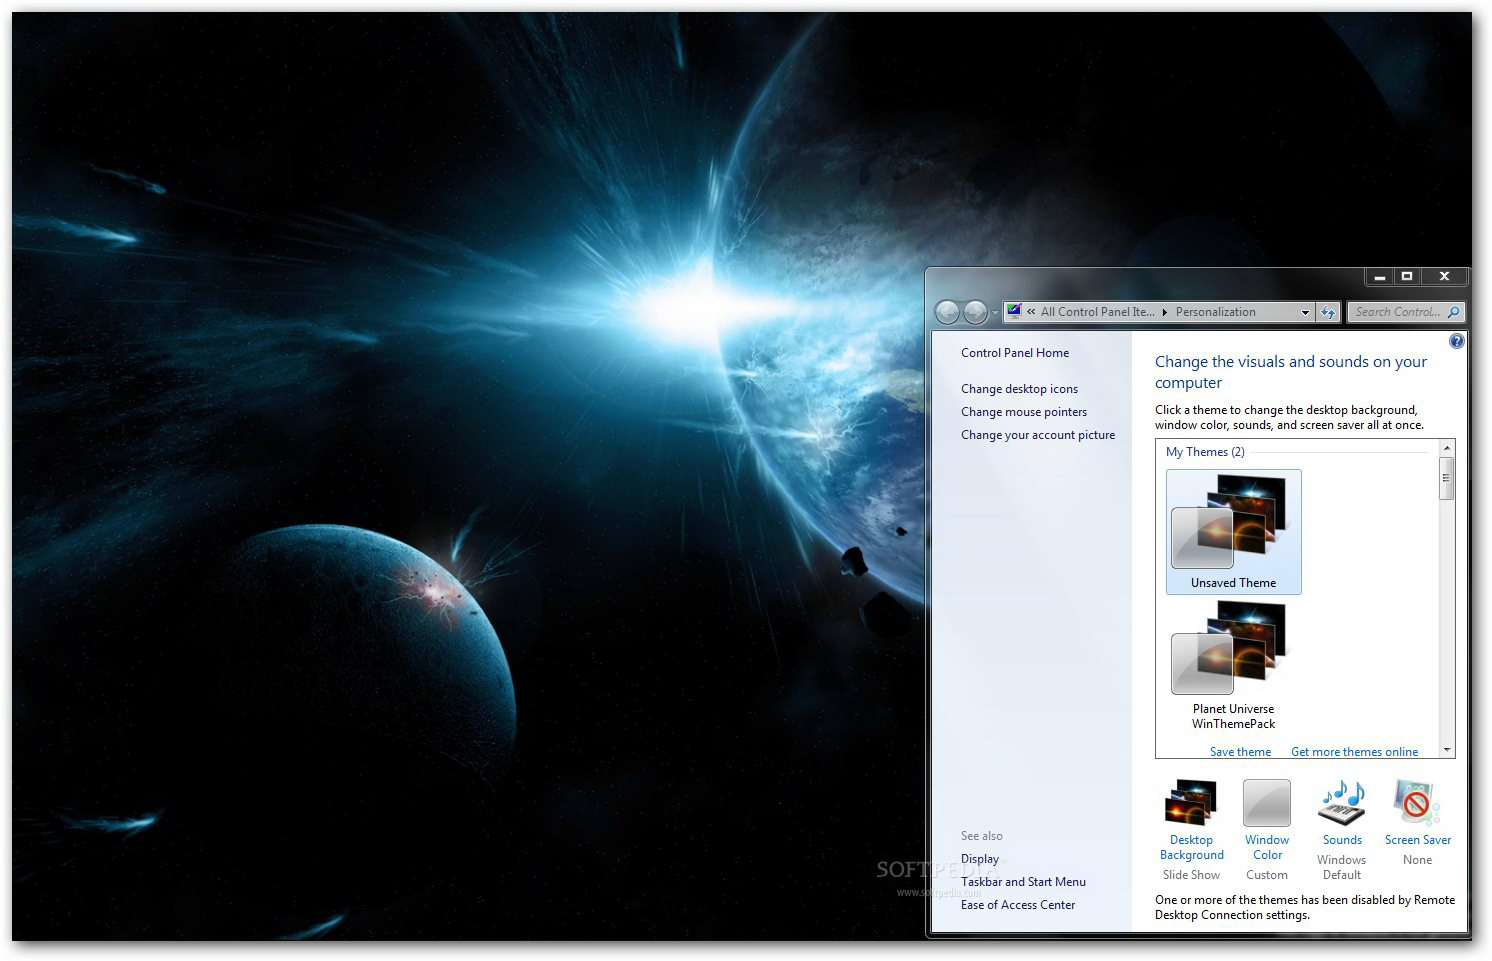 Planet Universe Windows Theme